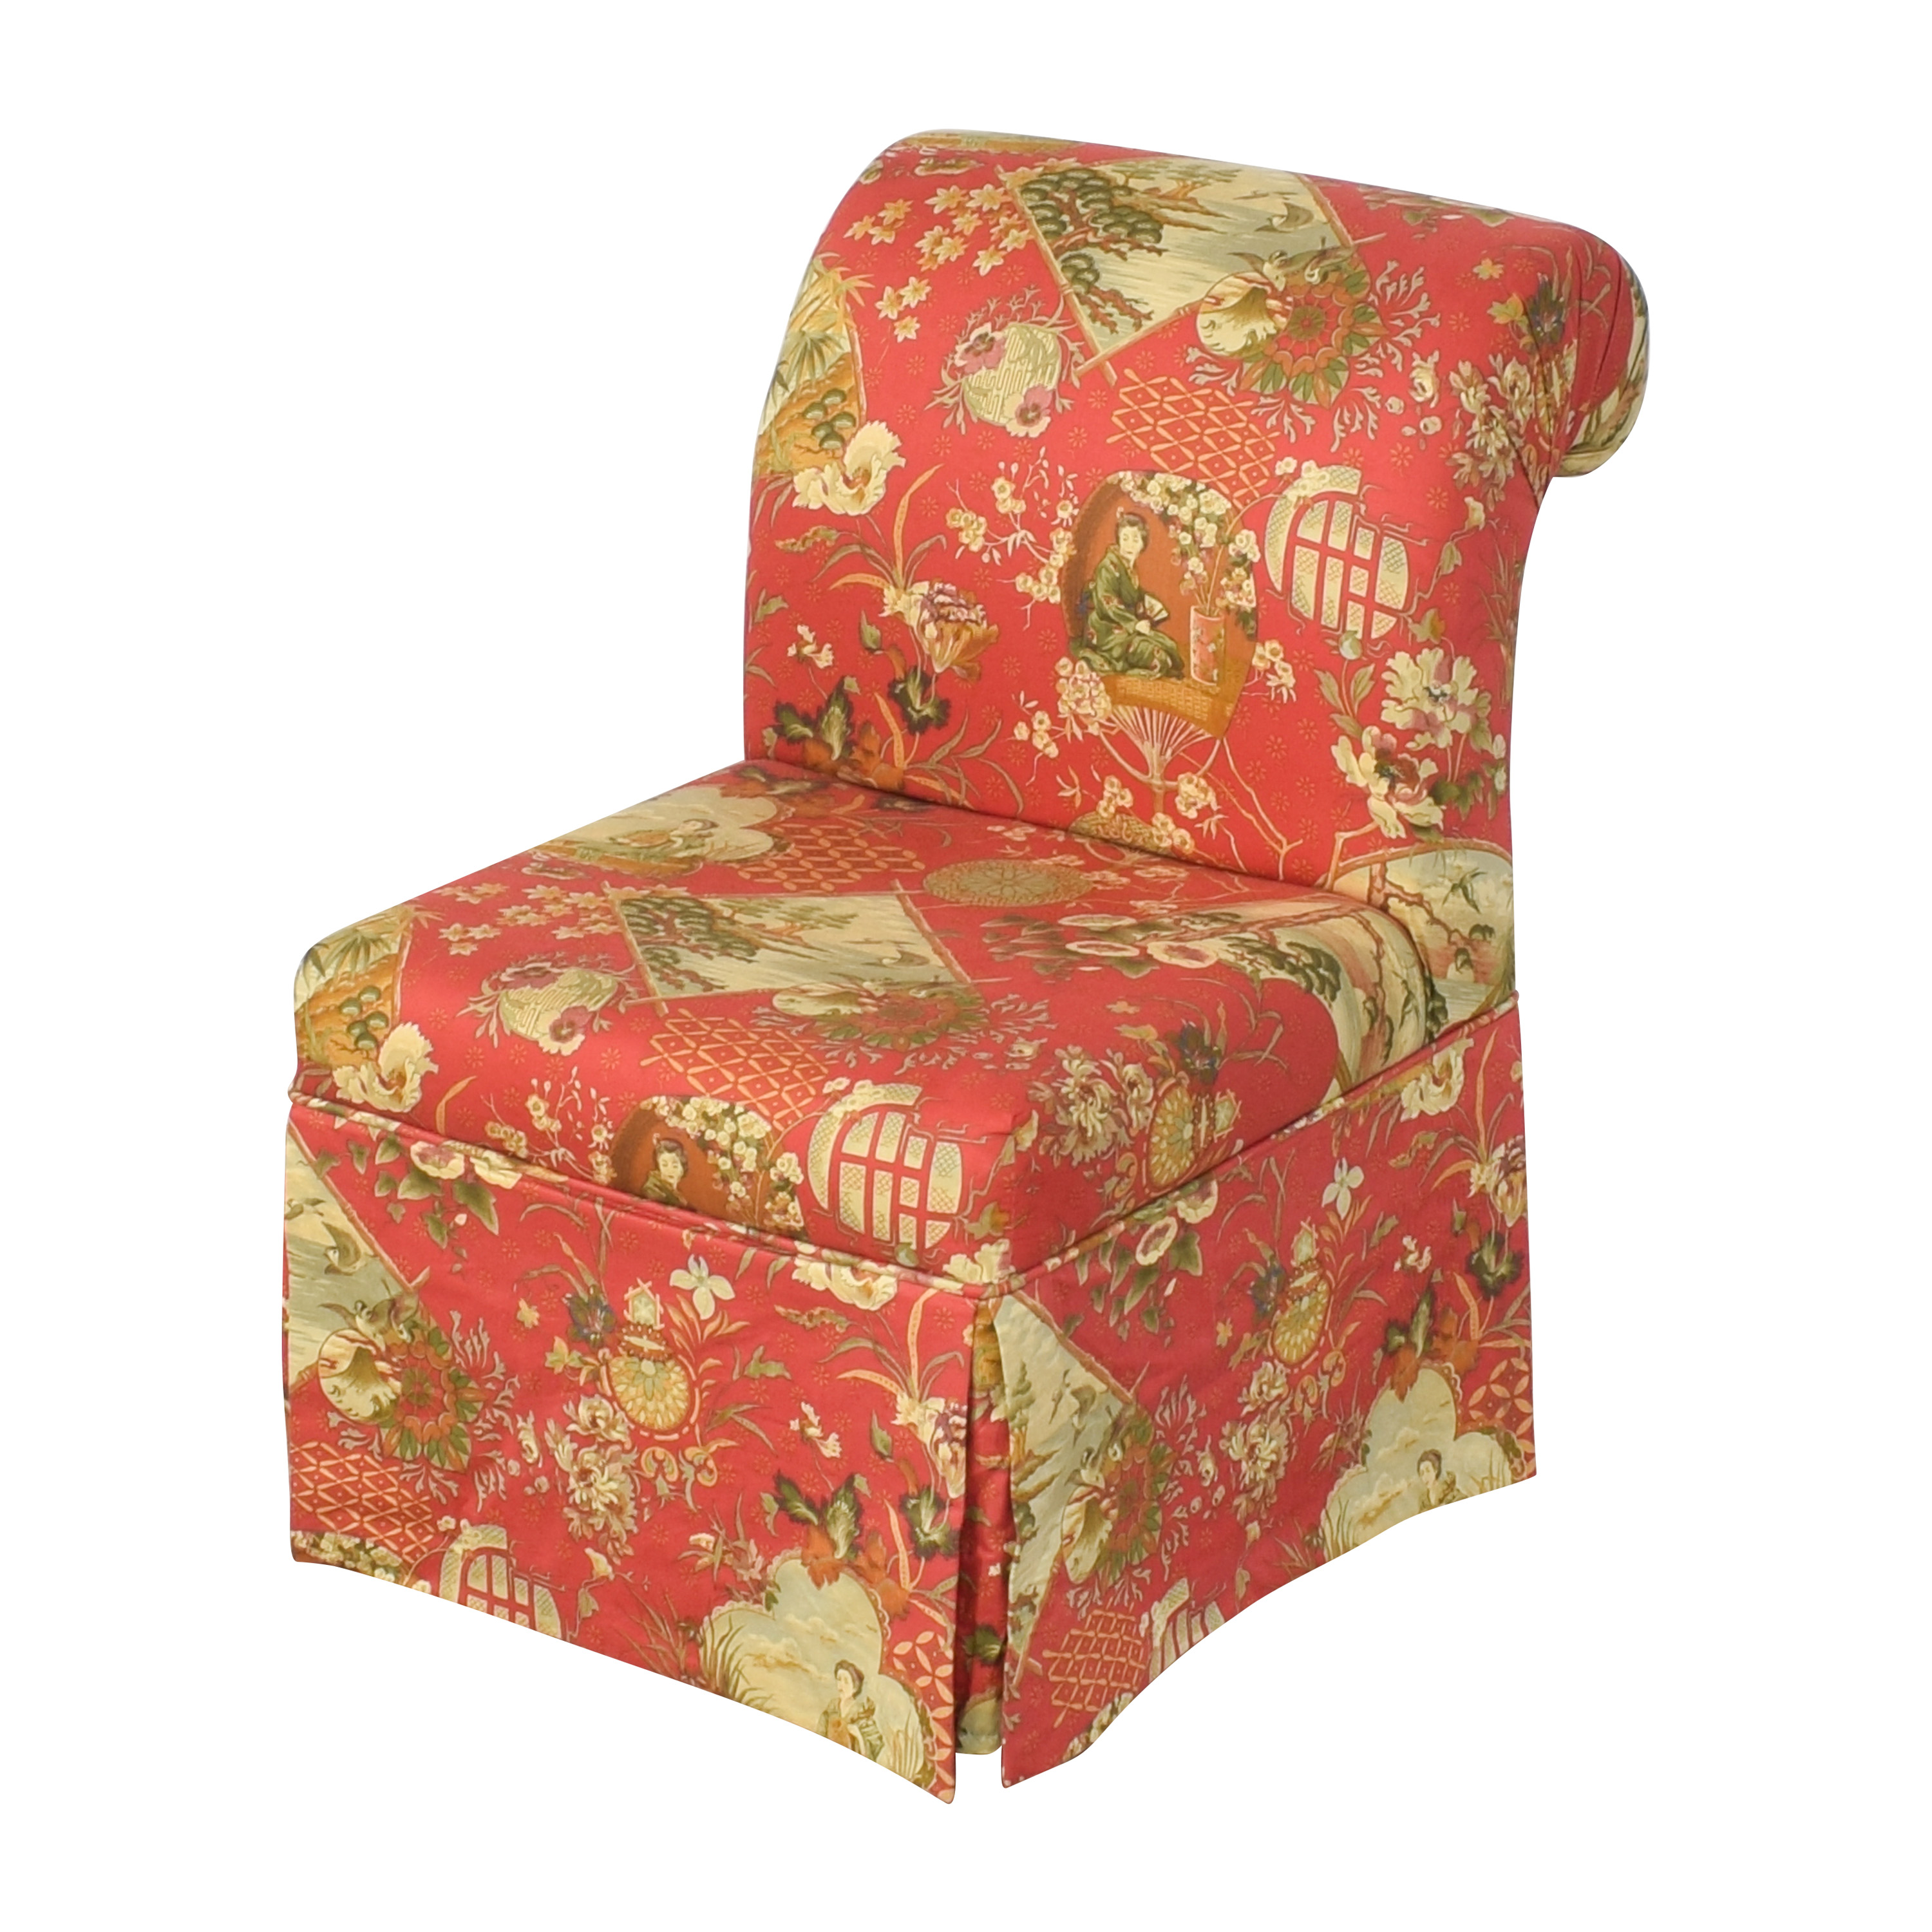 57 Off Carolina Accents Skirted Slipper Chair Chairs